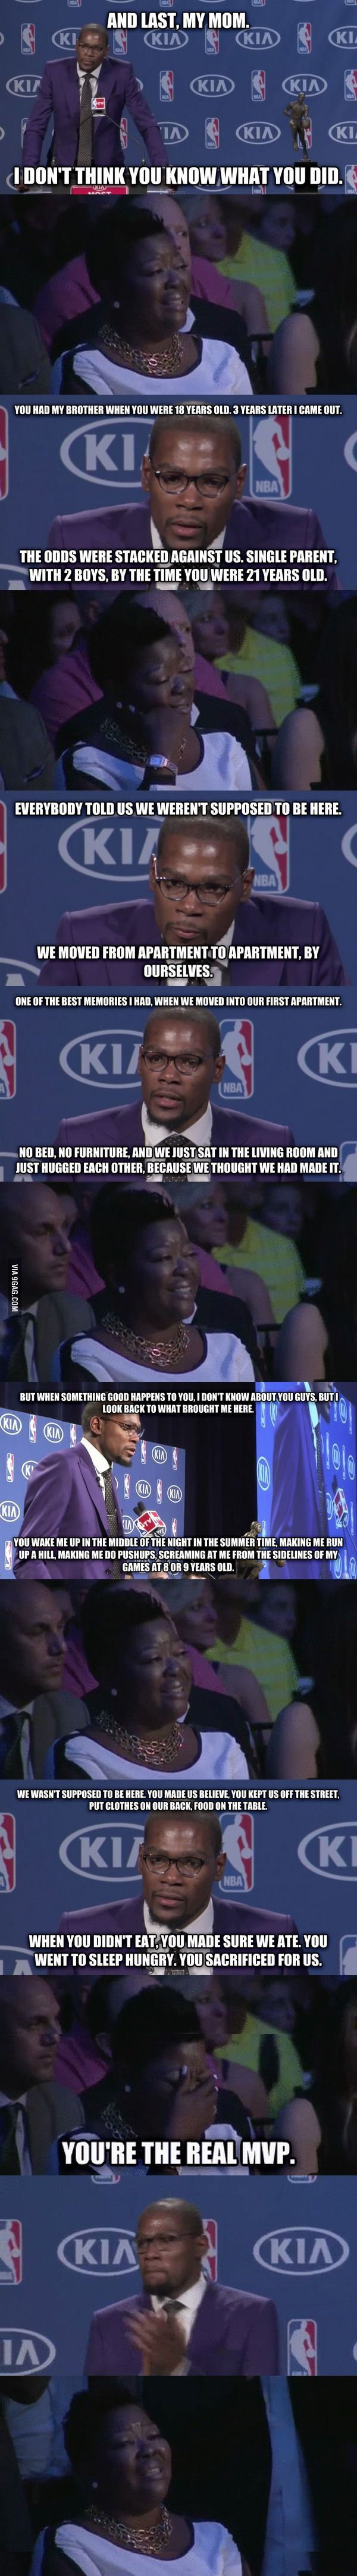 Kevin Durant talks about his mom during MVP speech